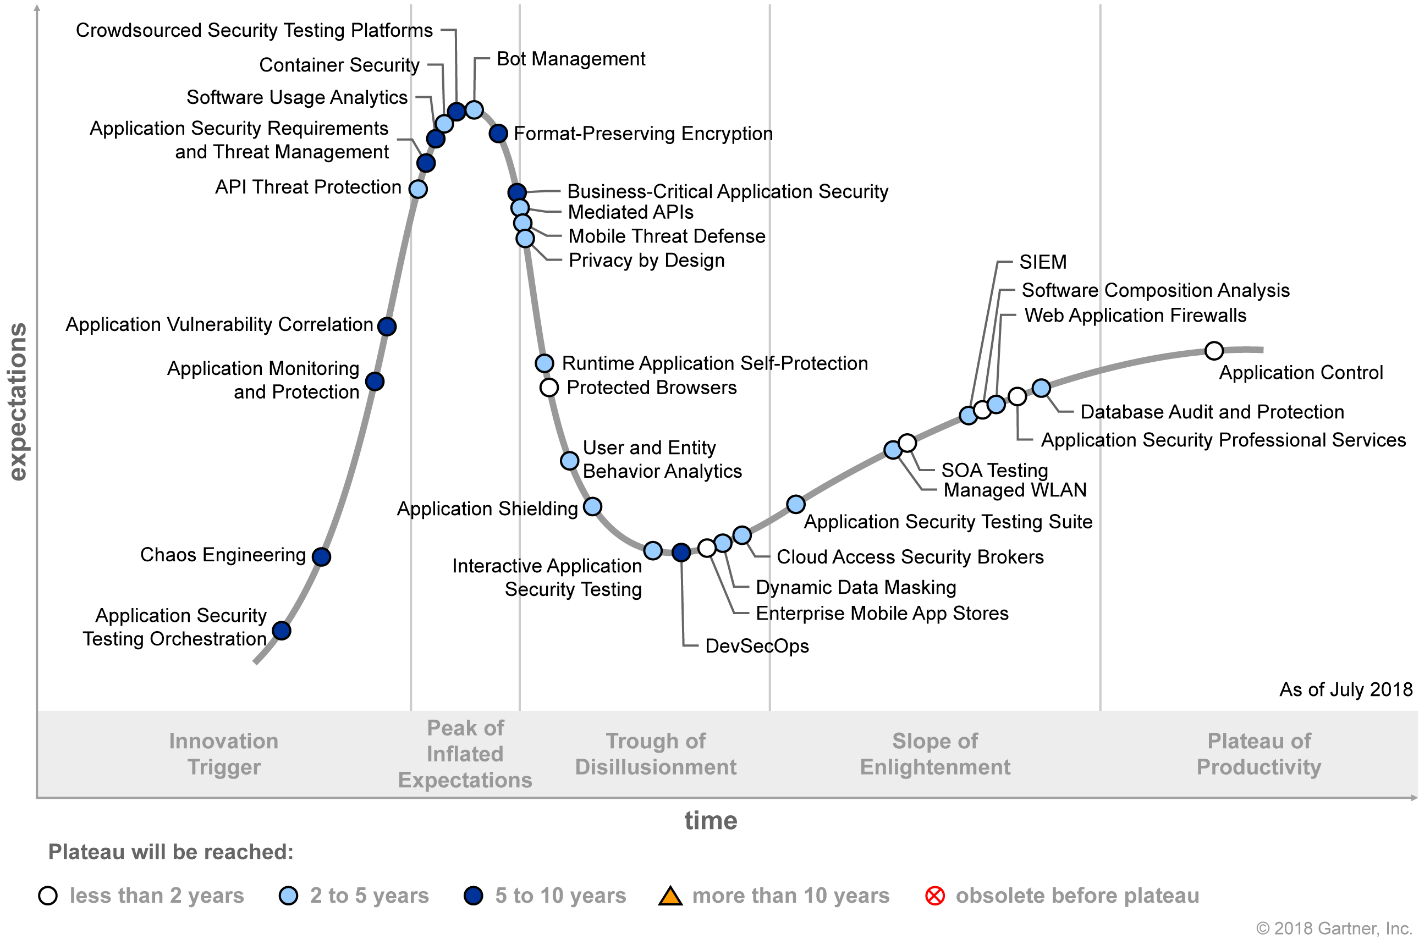 Gartner Hype Cycle for Application Security 2018 (G00340359)